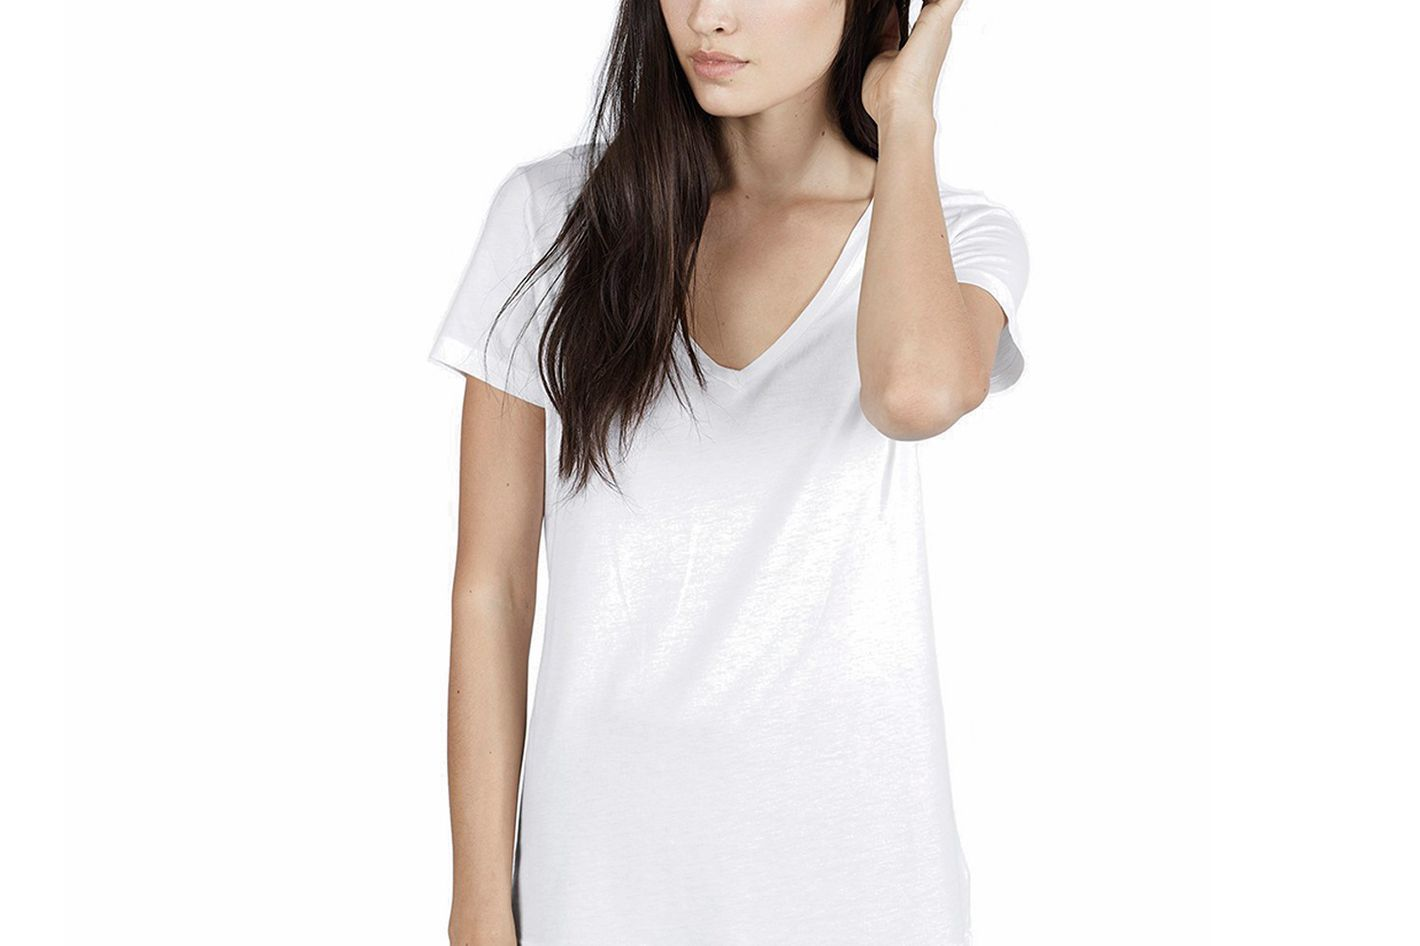 c47c7b45 Best white T-shirt to wear with a necklace